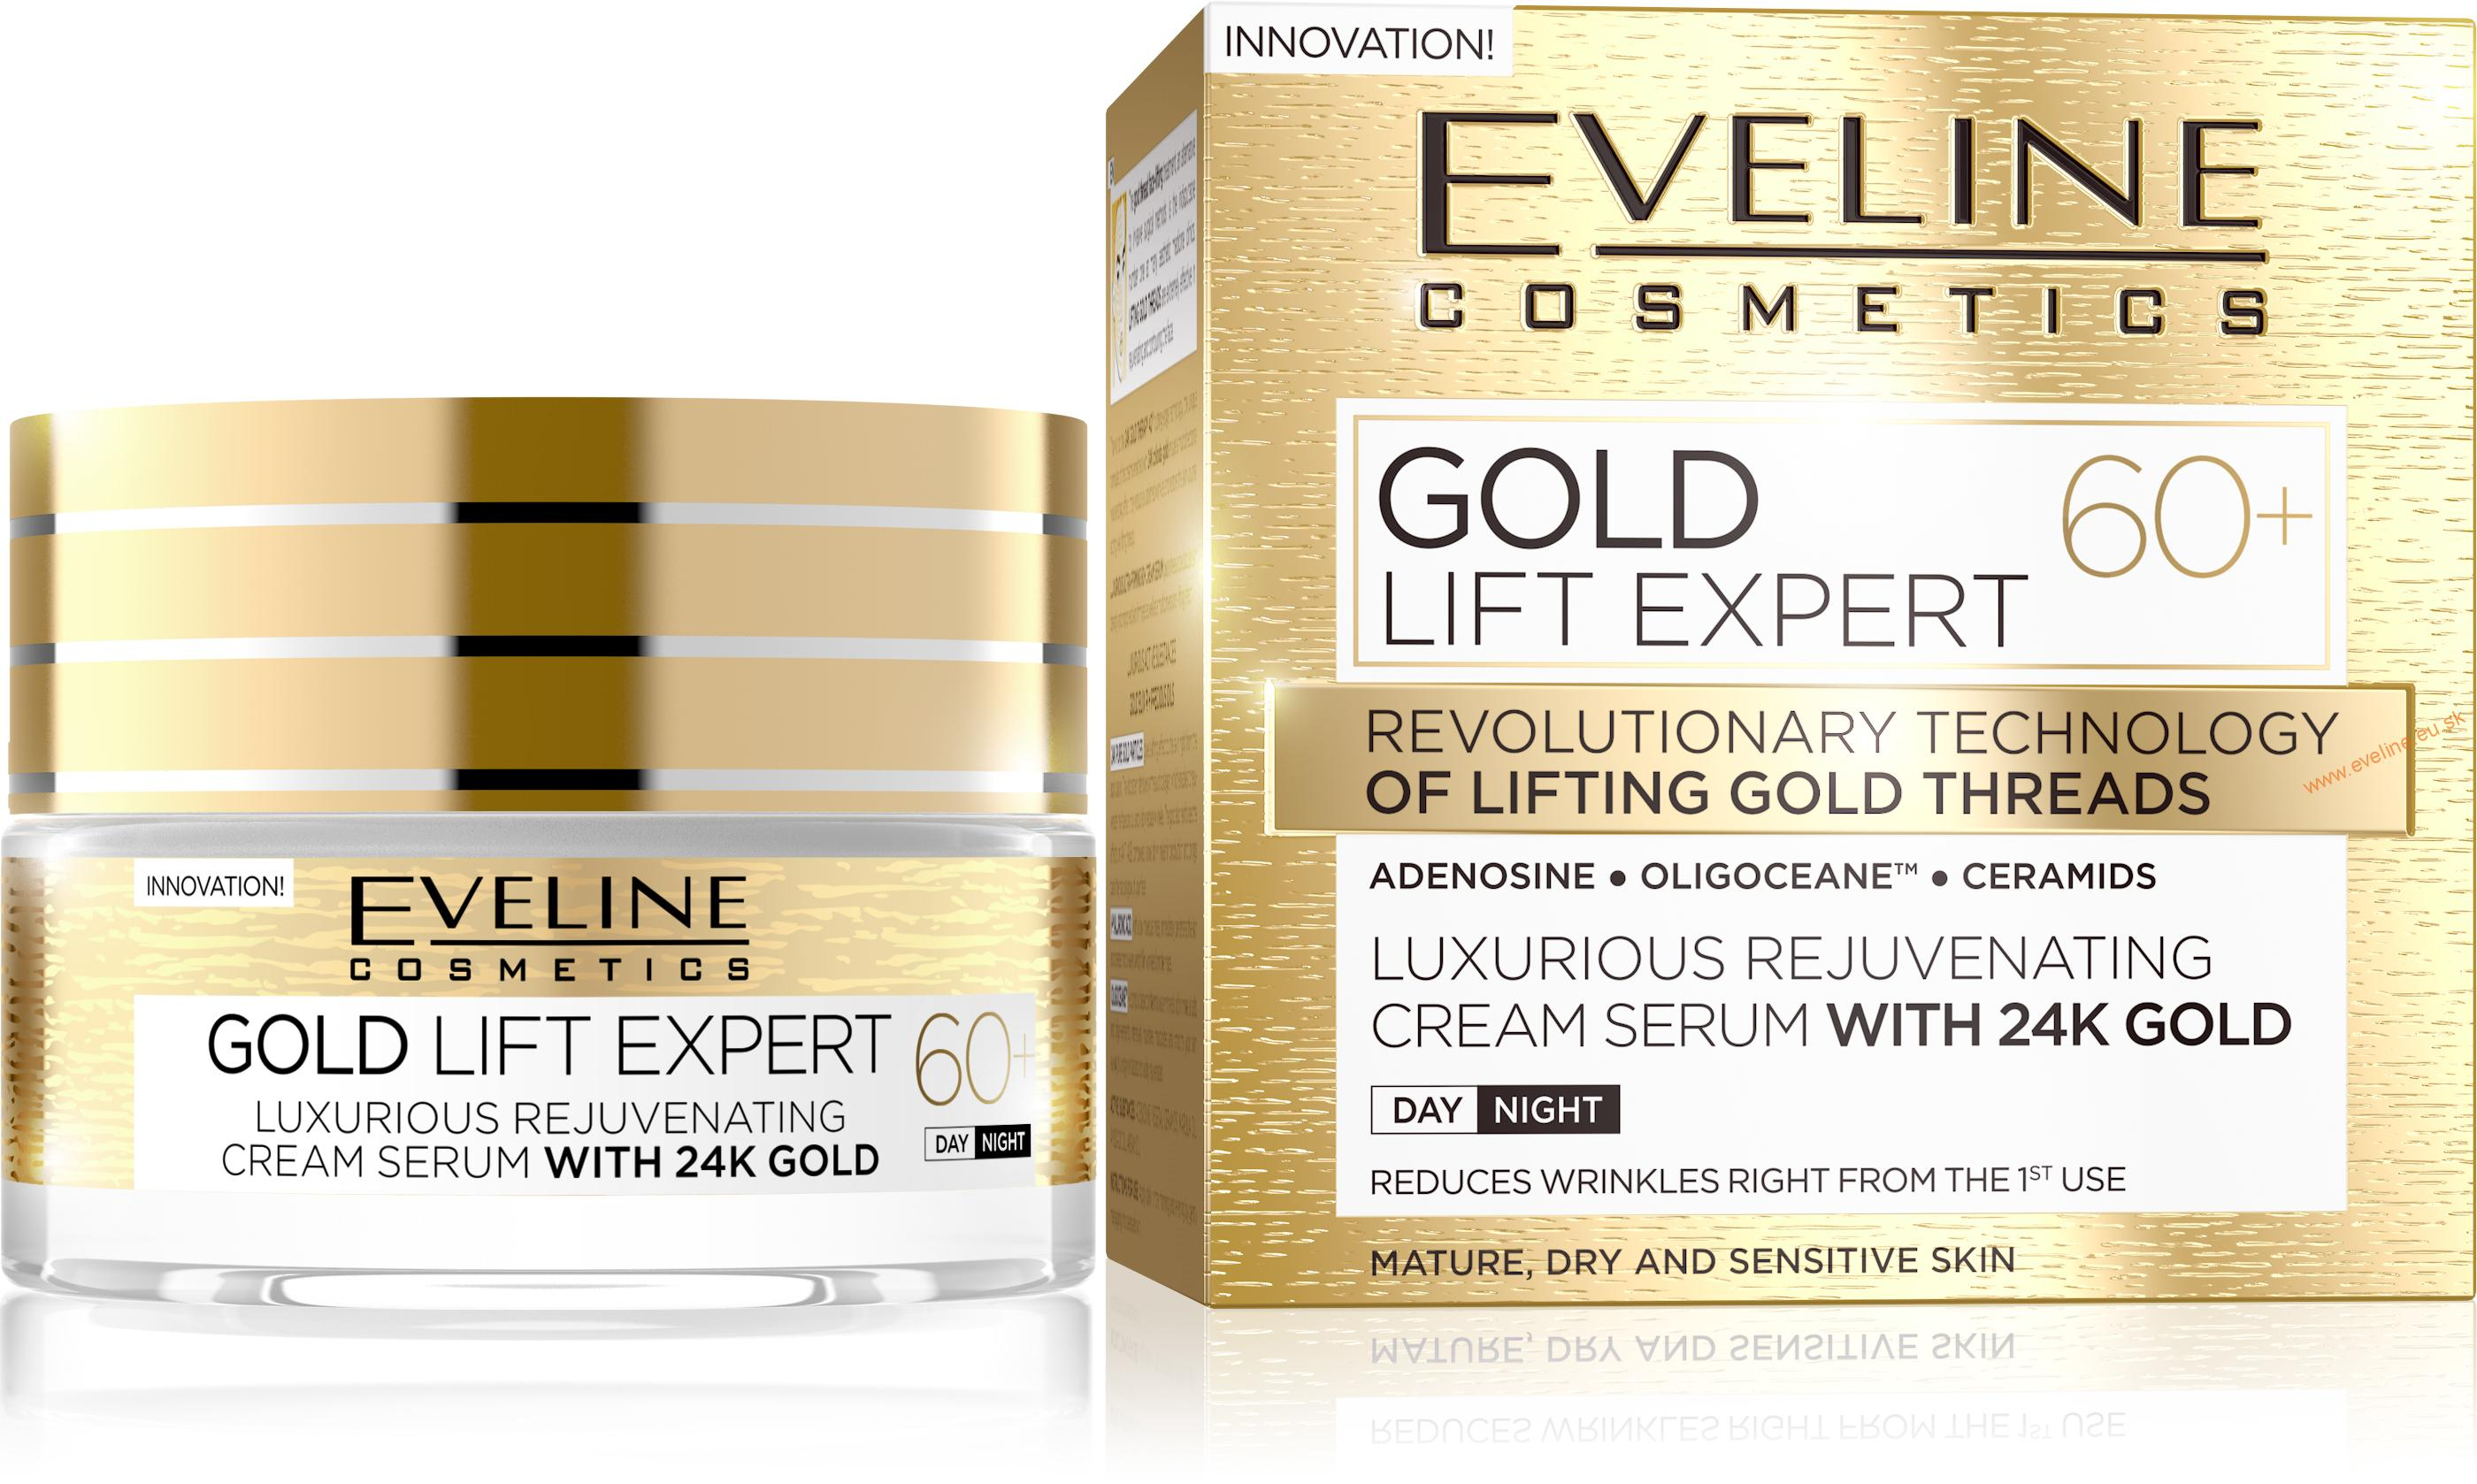 EVELINE Gold Lift Expert 60+